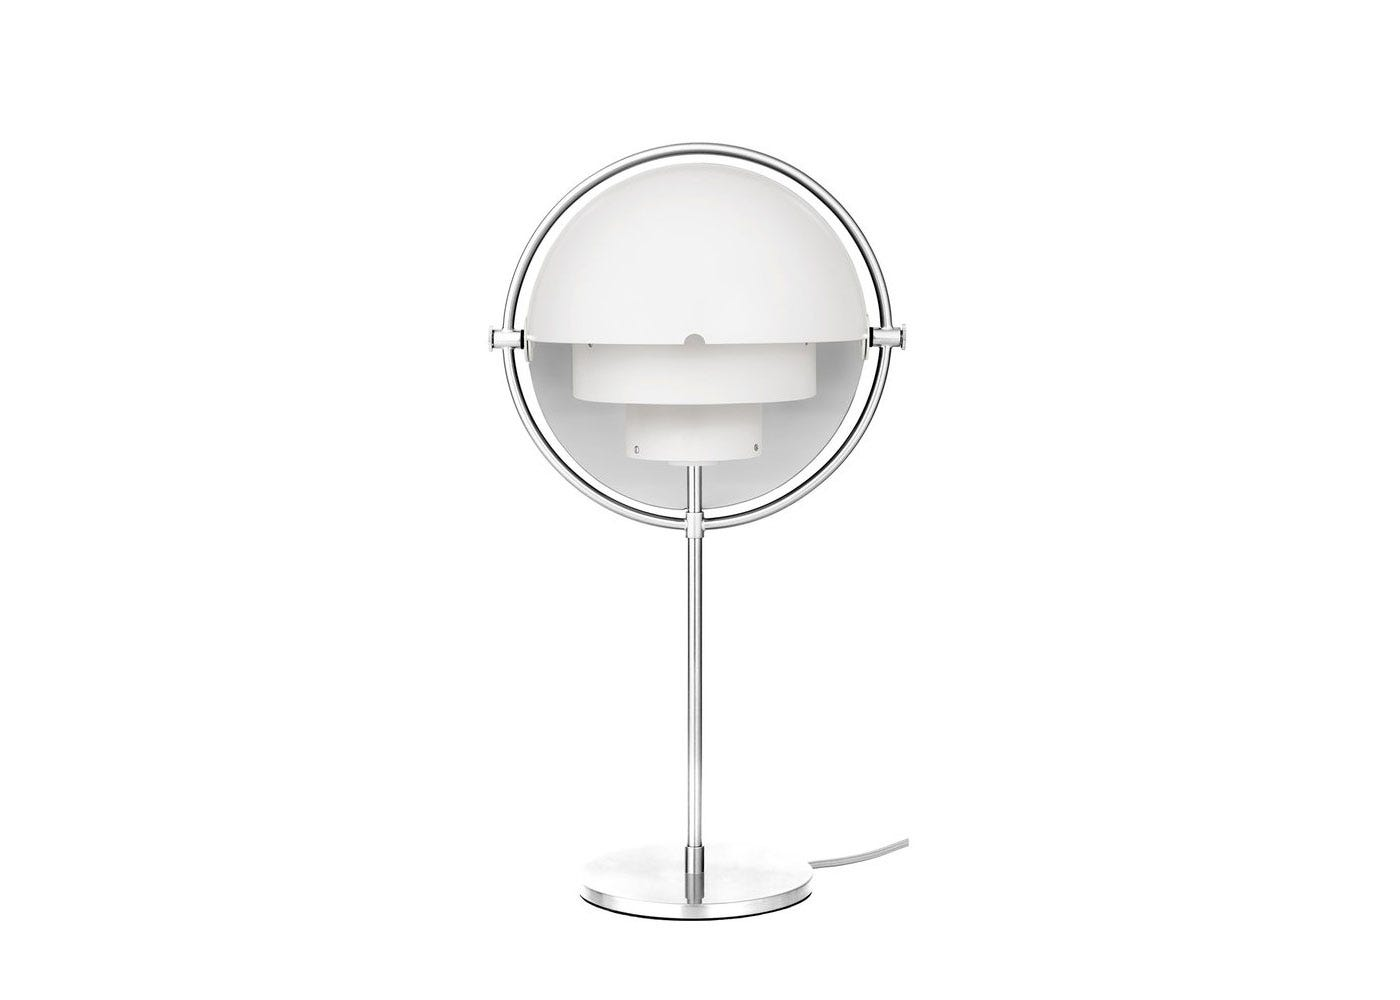 As shown: Multi Lite table lamp chrome base and white shade.